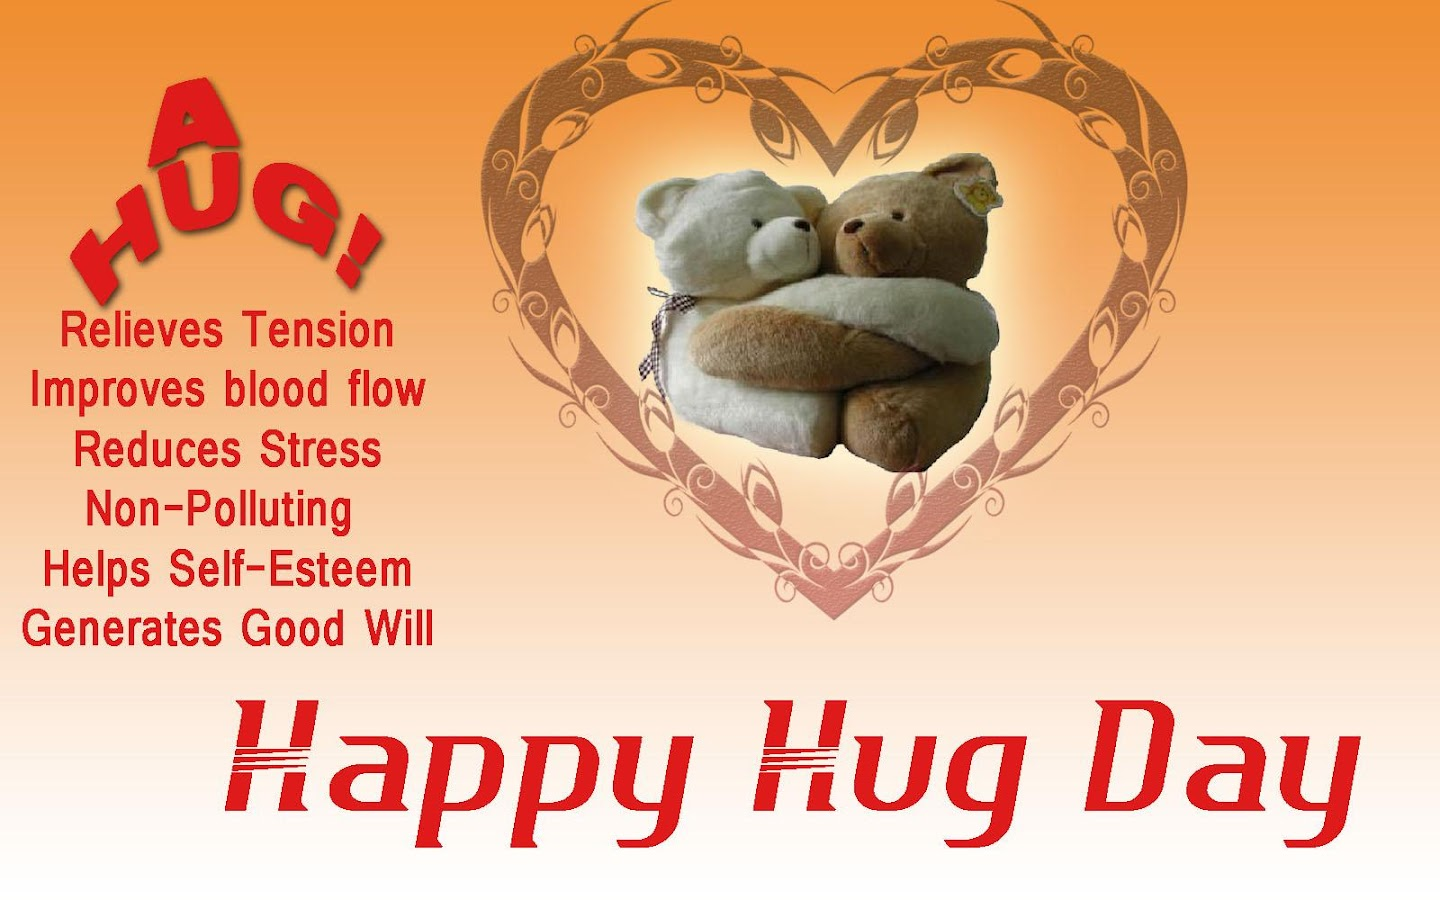 happy hug day - B4rkLqwP6i msfRkuuBVYqrT8mePfAi73oEDjEQYVCirolKZ4T  myLSY351WAwZQF0 h900 - Happy Hug Day ❥❤ Send Best Hug Day Message Sms Wishes Quotes Images Wallpaper To Your Love ♥❣